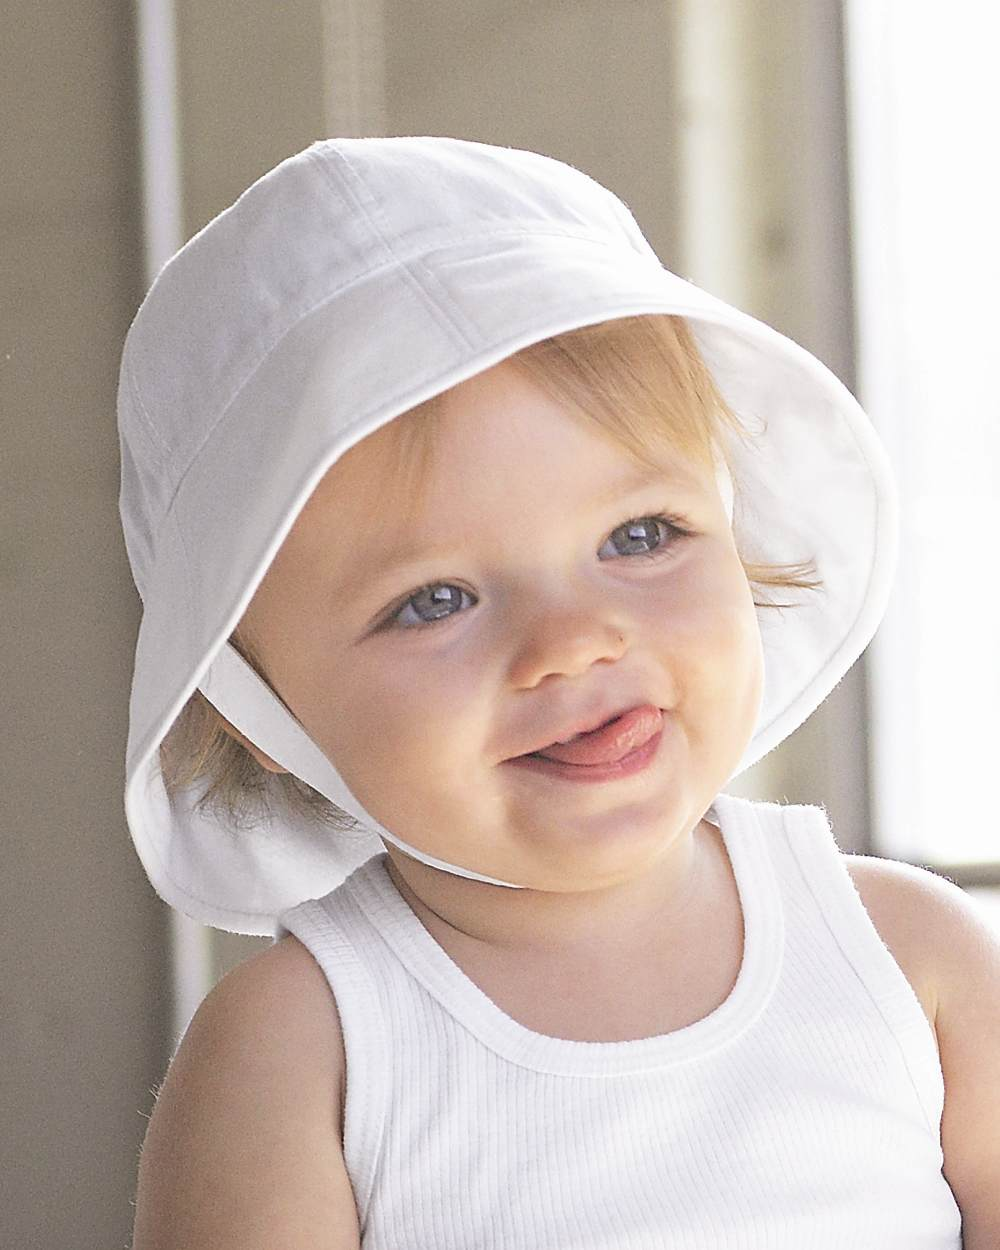 Baby Sun Hats. invalid category id. Baby Sun Hats. Showing 1 of 1 results that match your query. We focused on the bestselling products customers like you want most in categories like Baby, Clothing, Electronics and Health & Beauty. Marketplace items (products not sold by fascinatingnewsvv.ml).